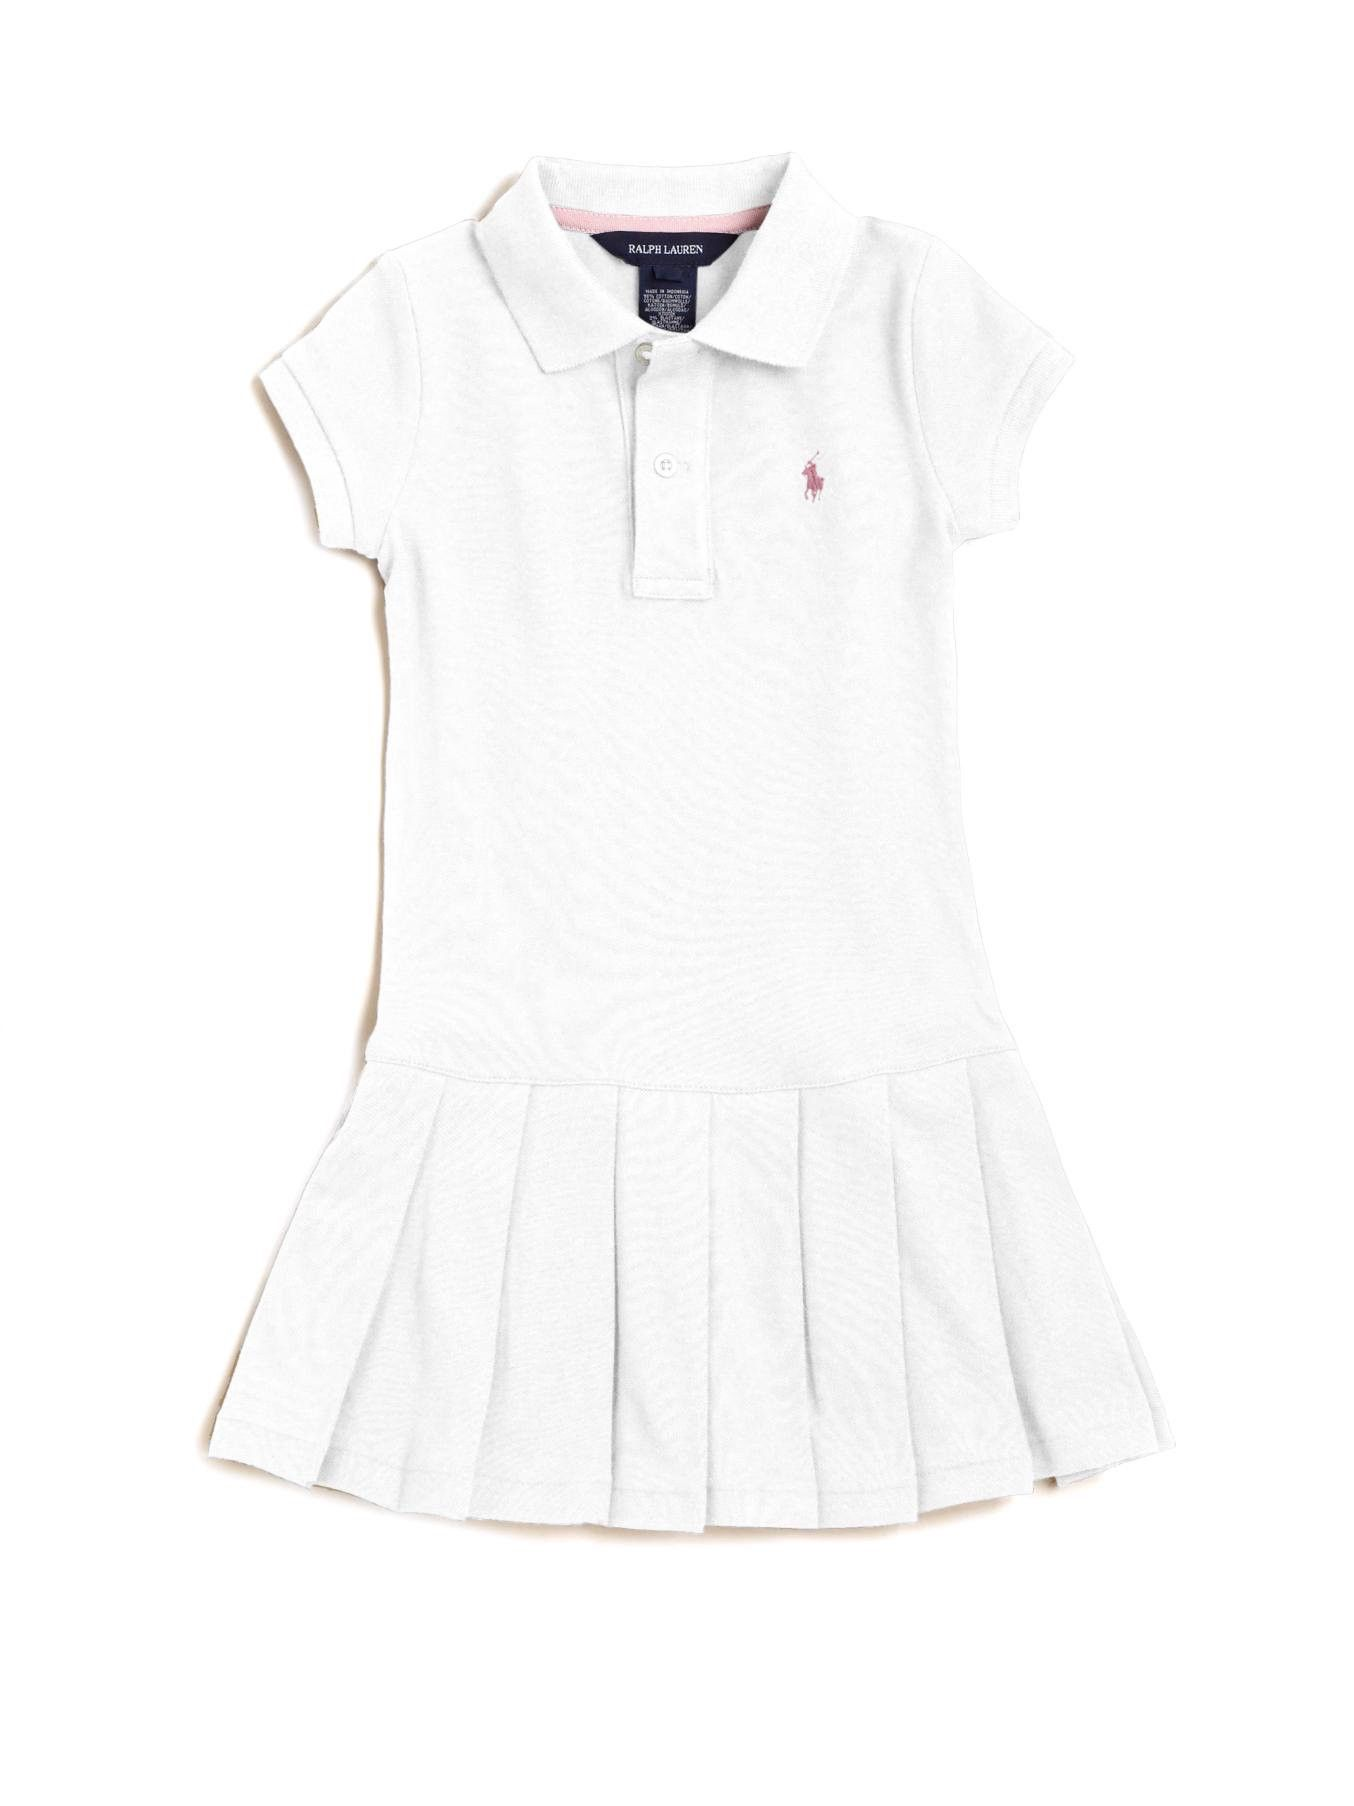 9bac6a133 Toddler's & Little Girl's Polo Dress by Ralph Lauren in 2019 ...